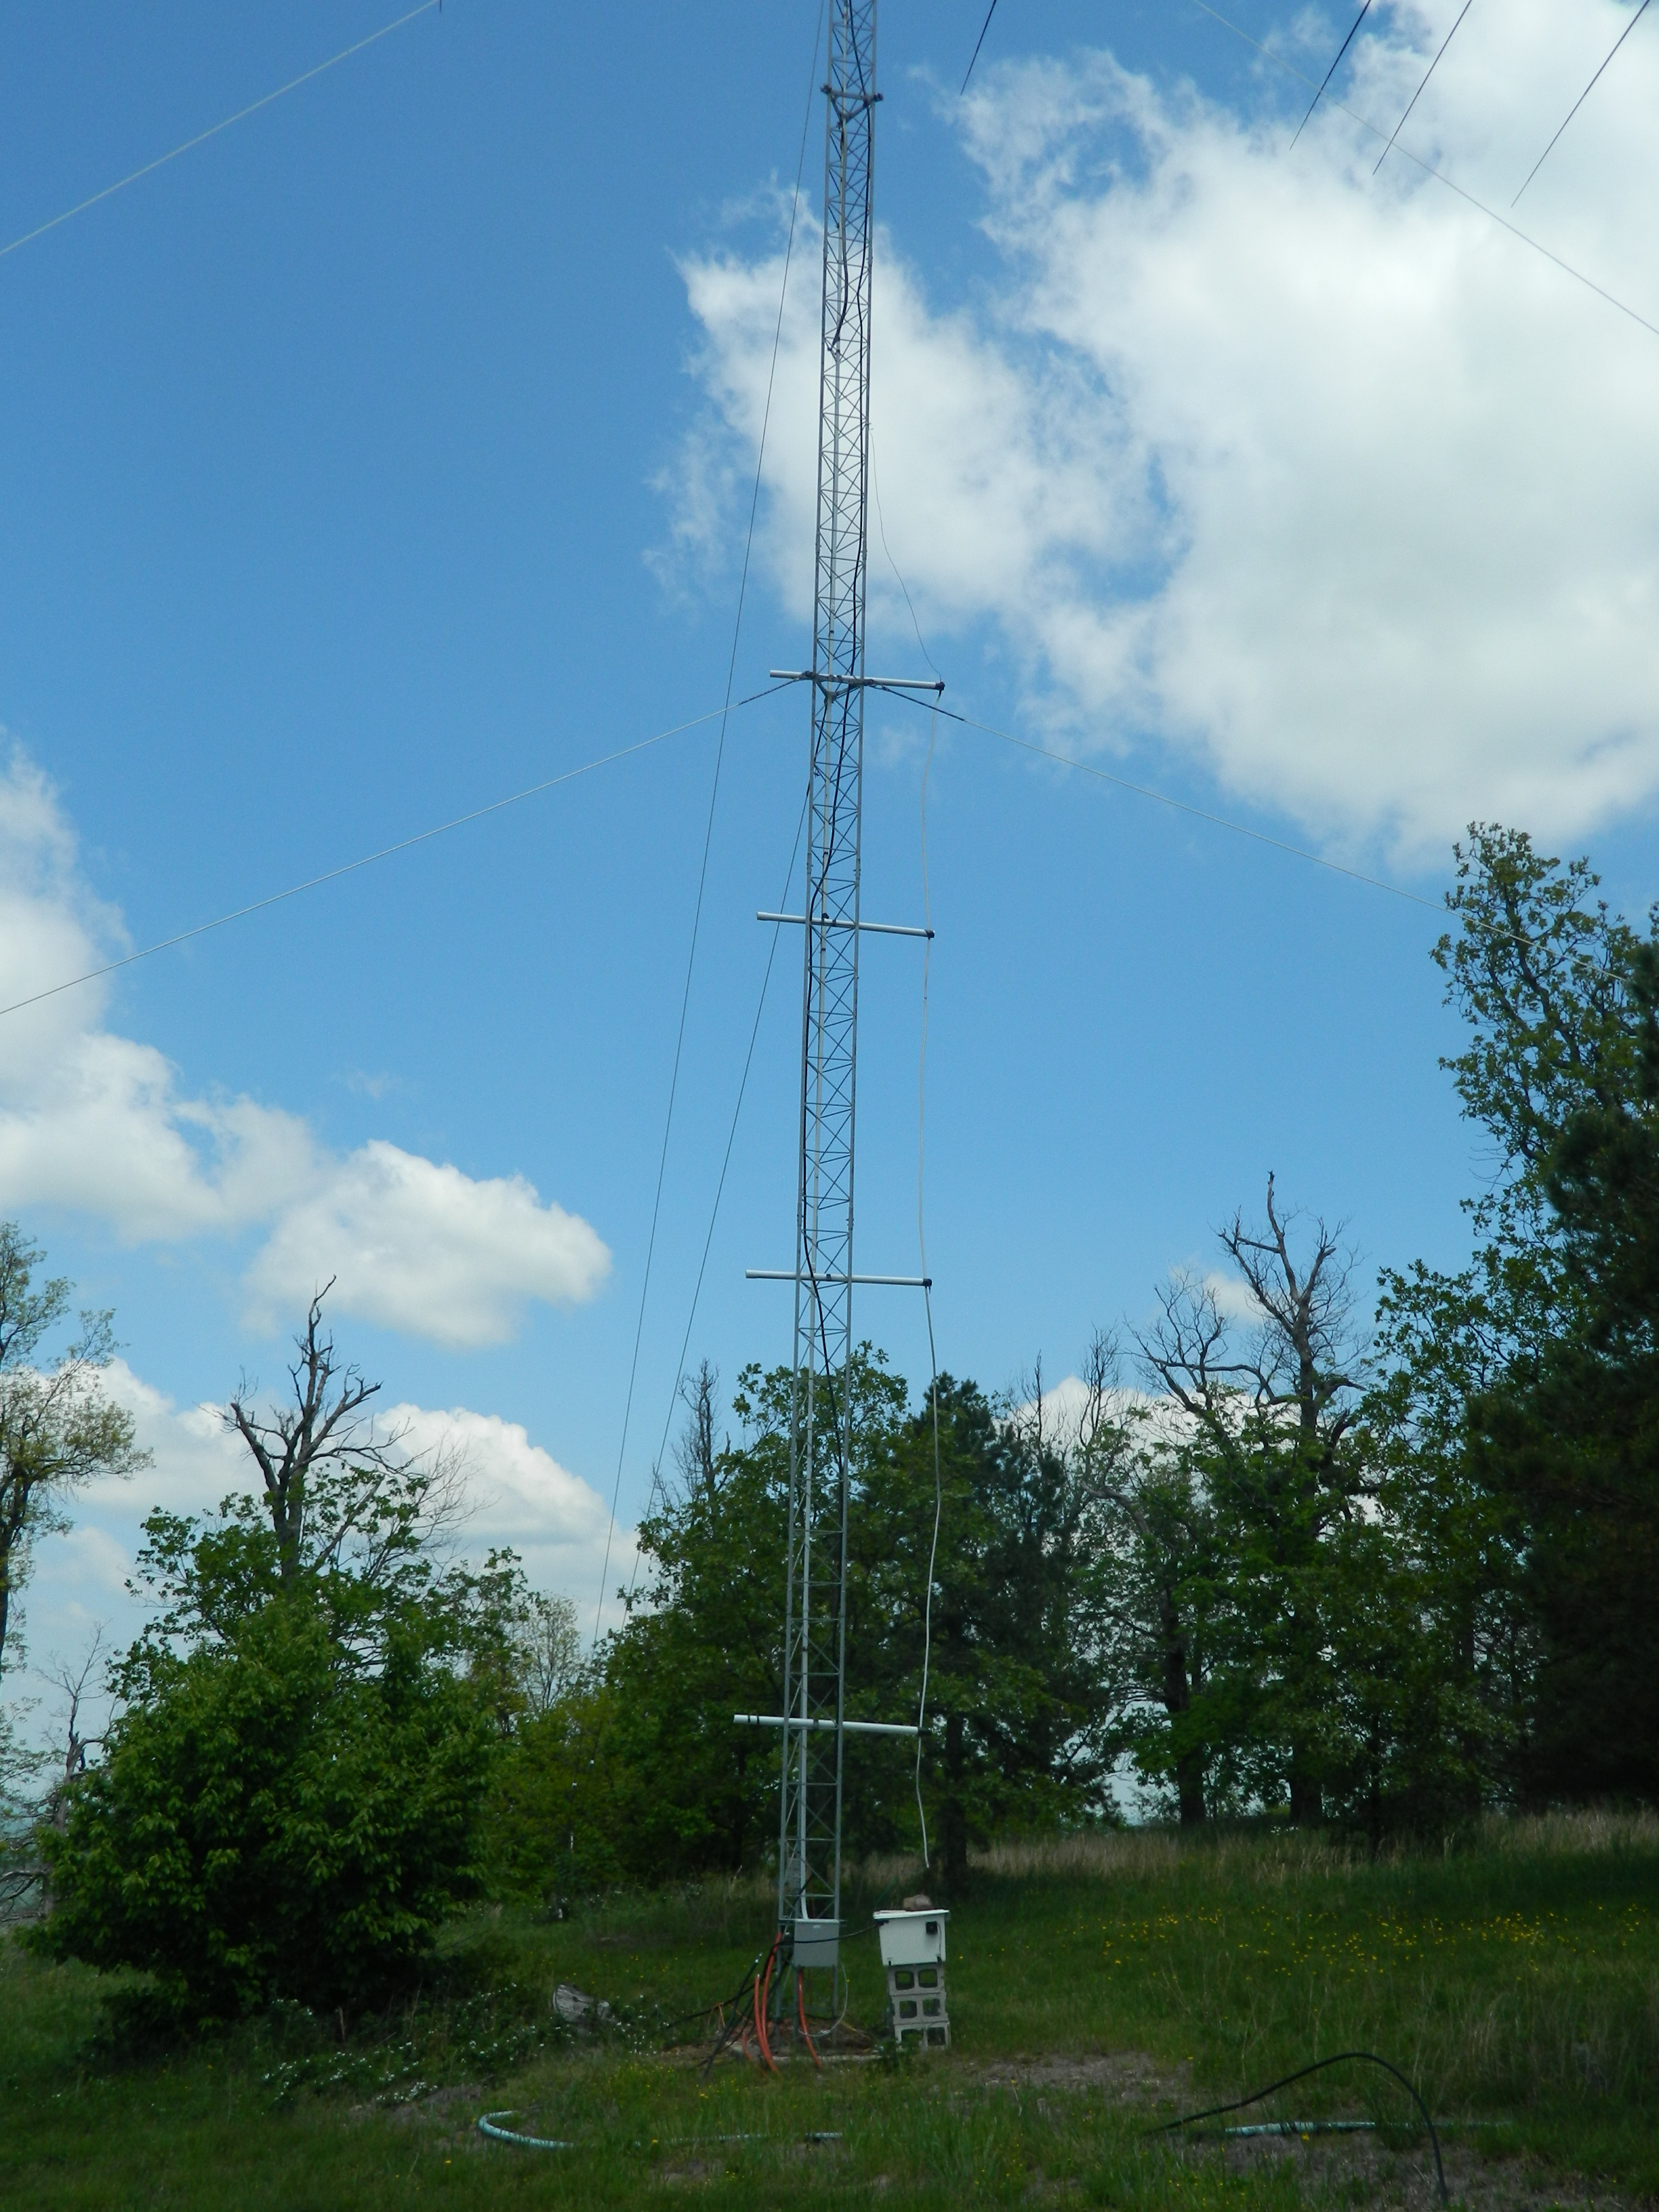 Shunt Fed Tower for 160 Meters